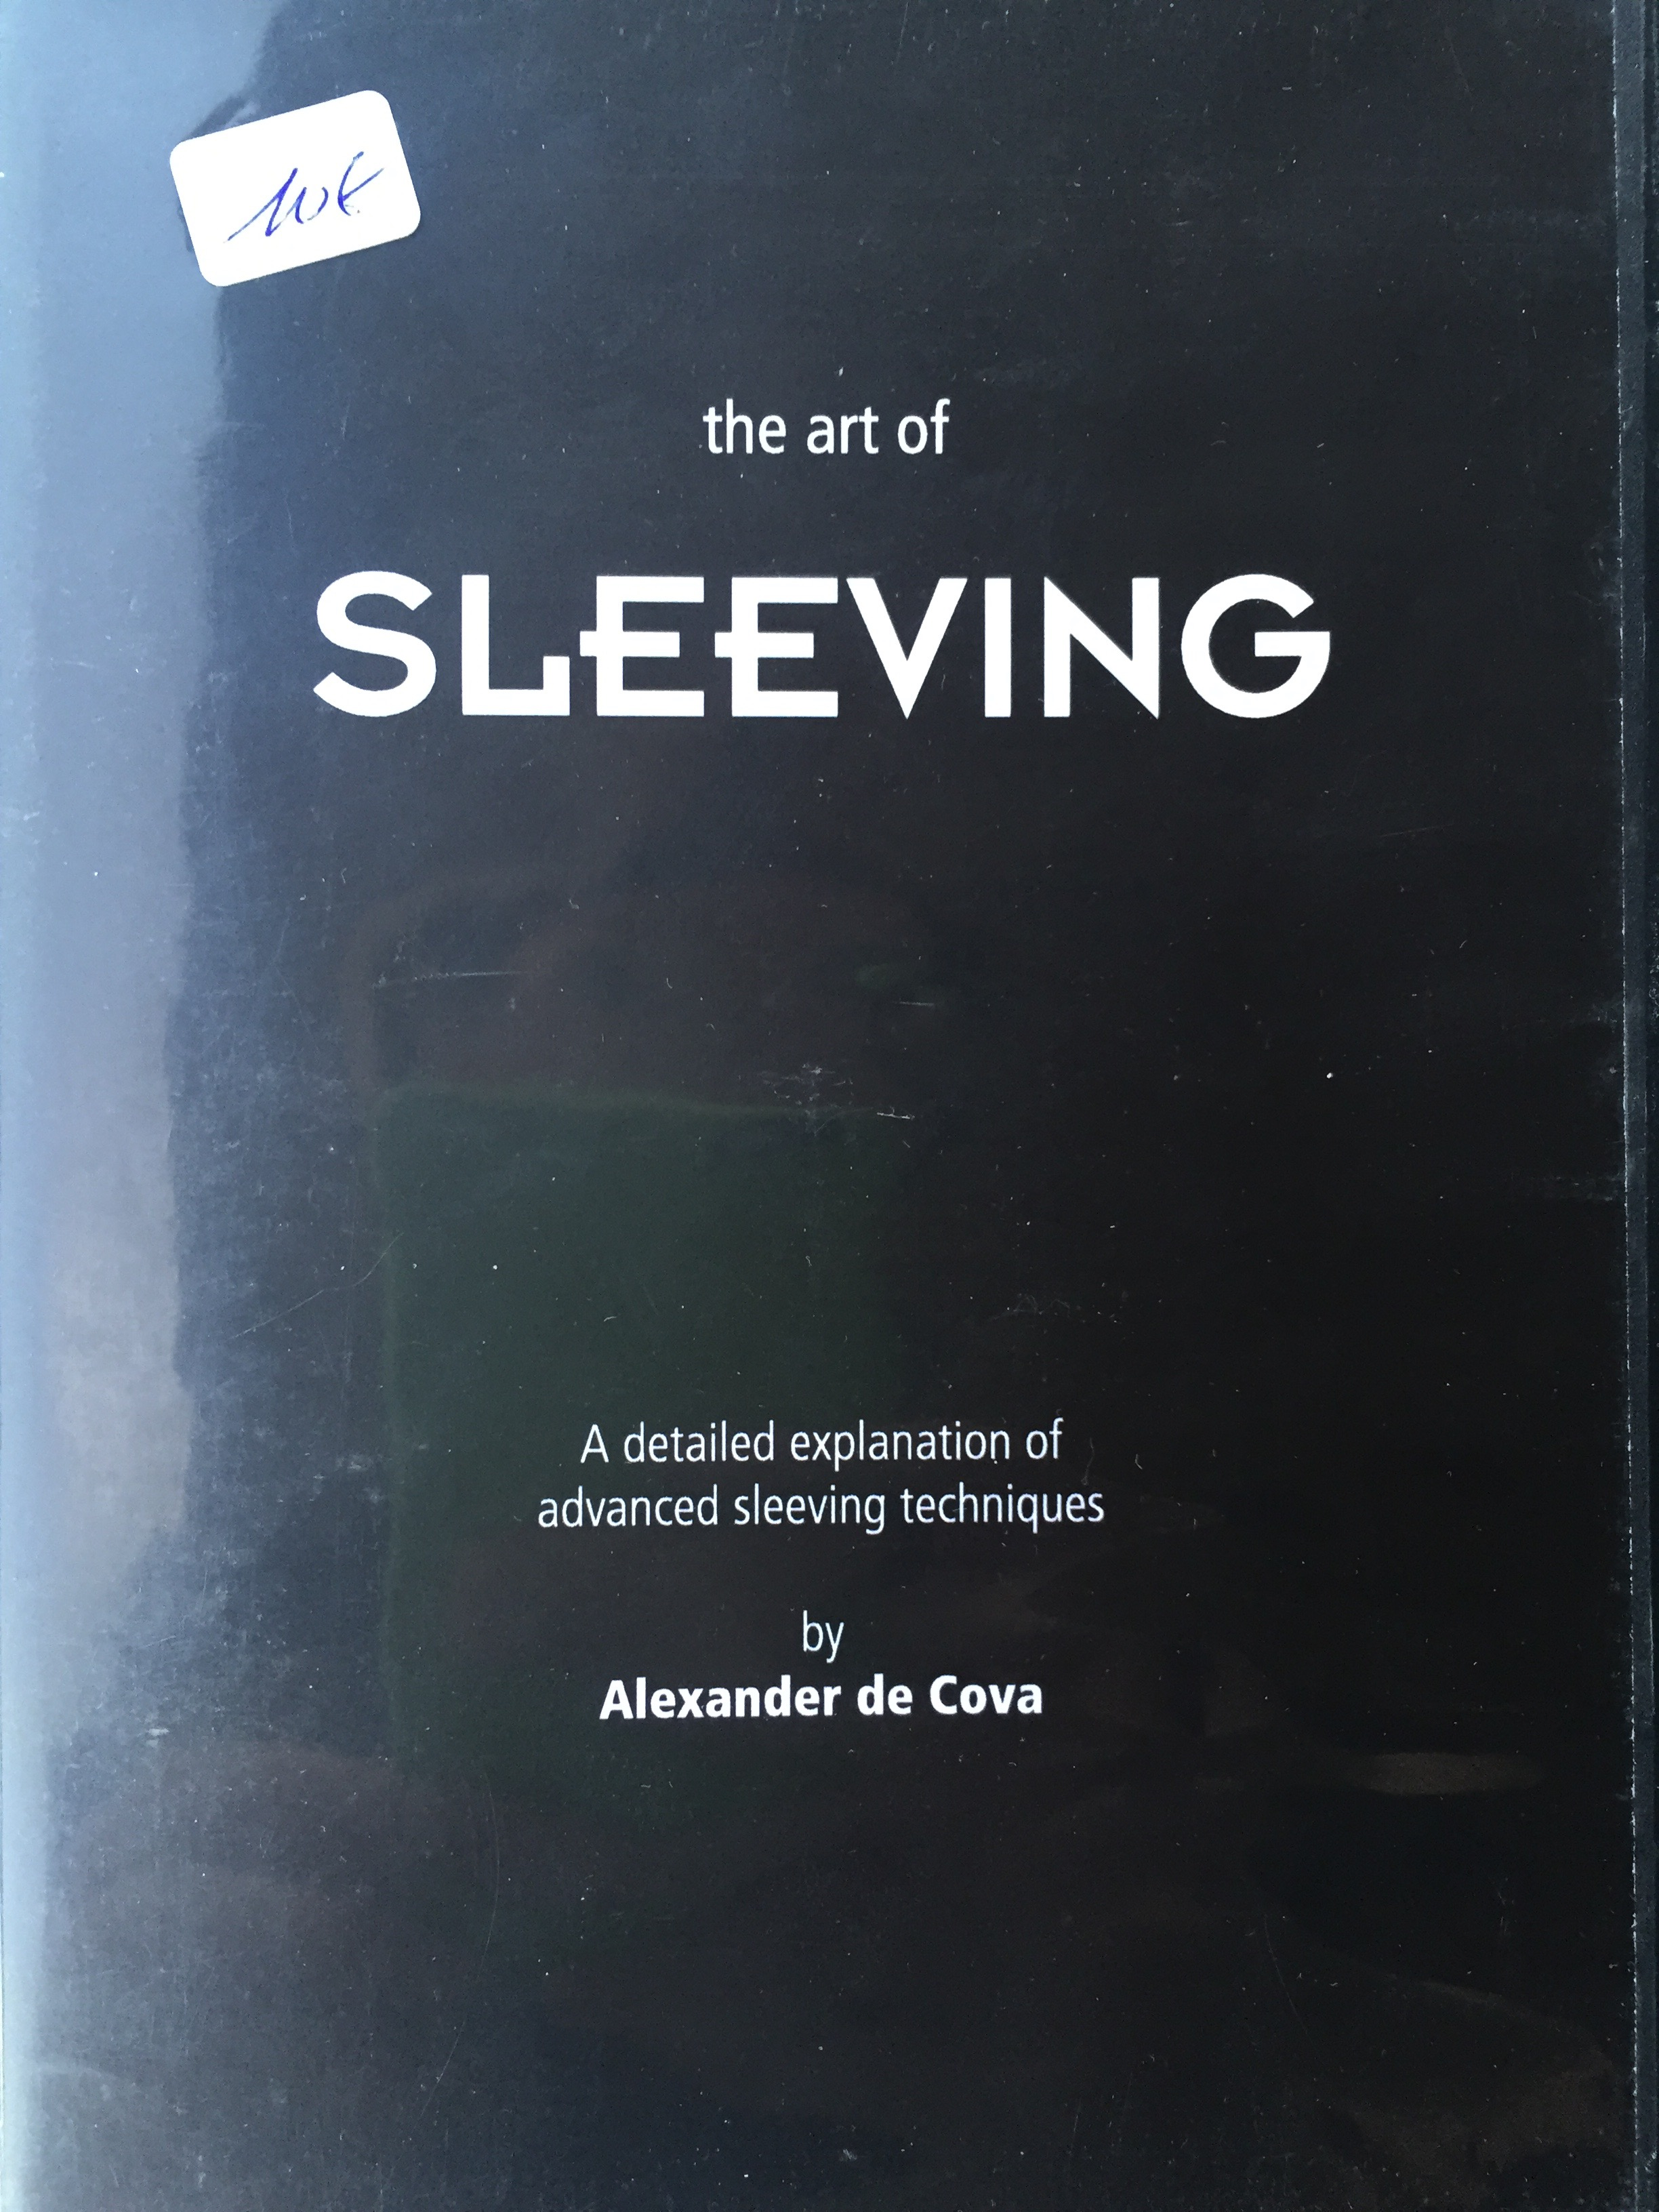 Image result for The Art Of Sleeving by Alexander de Cova